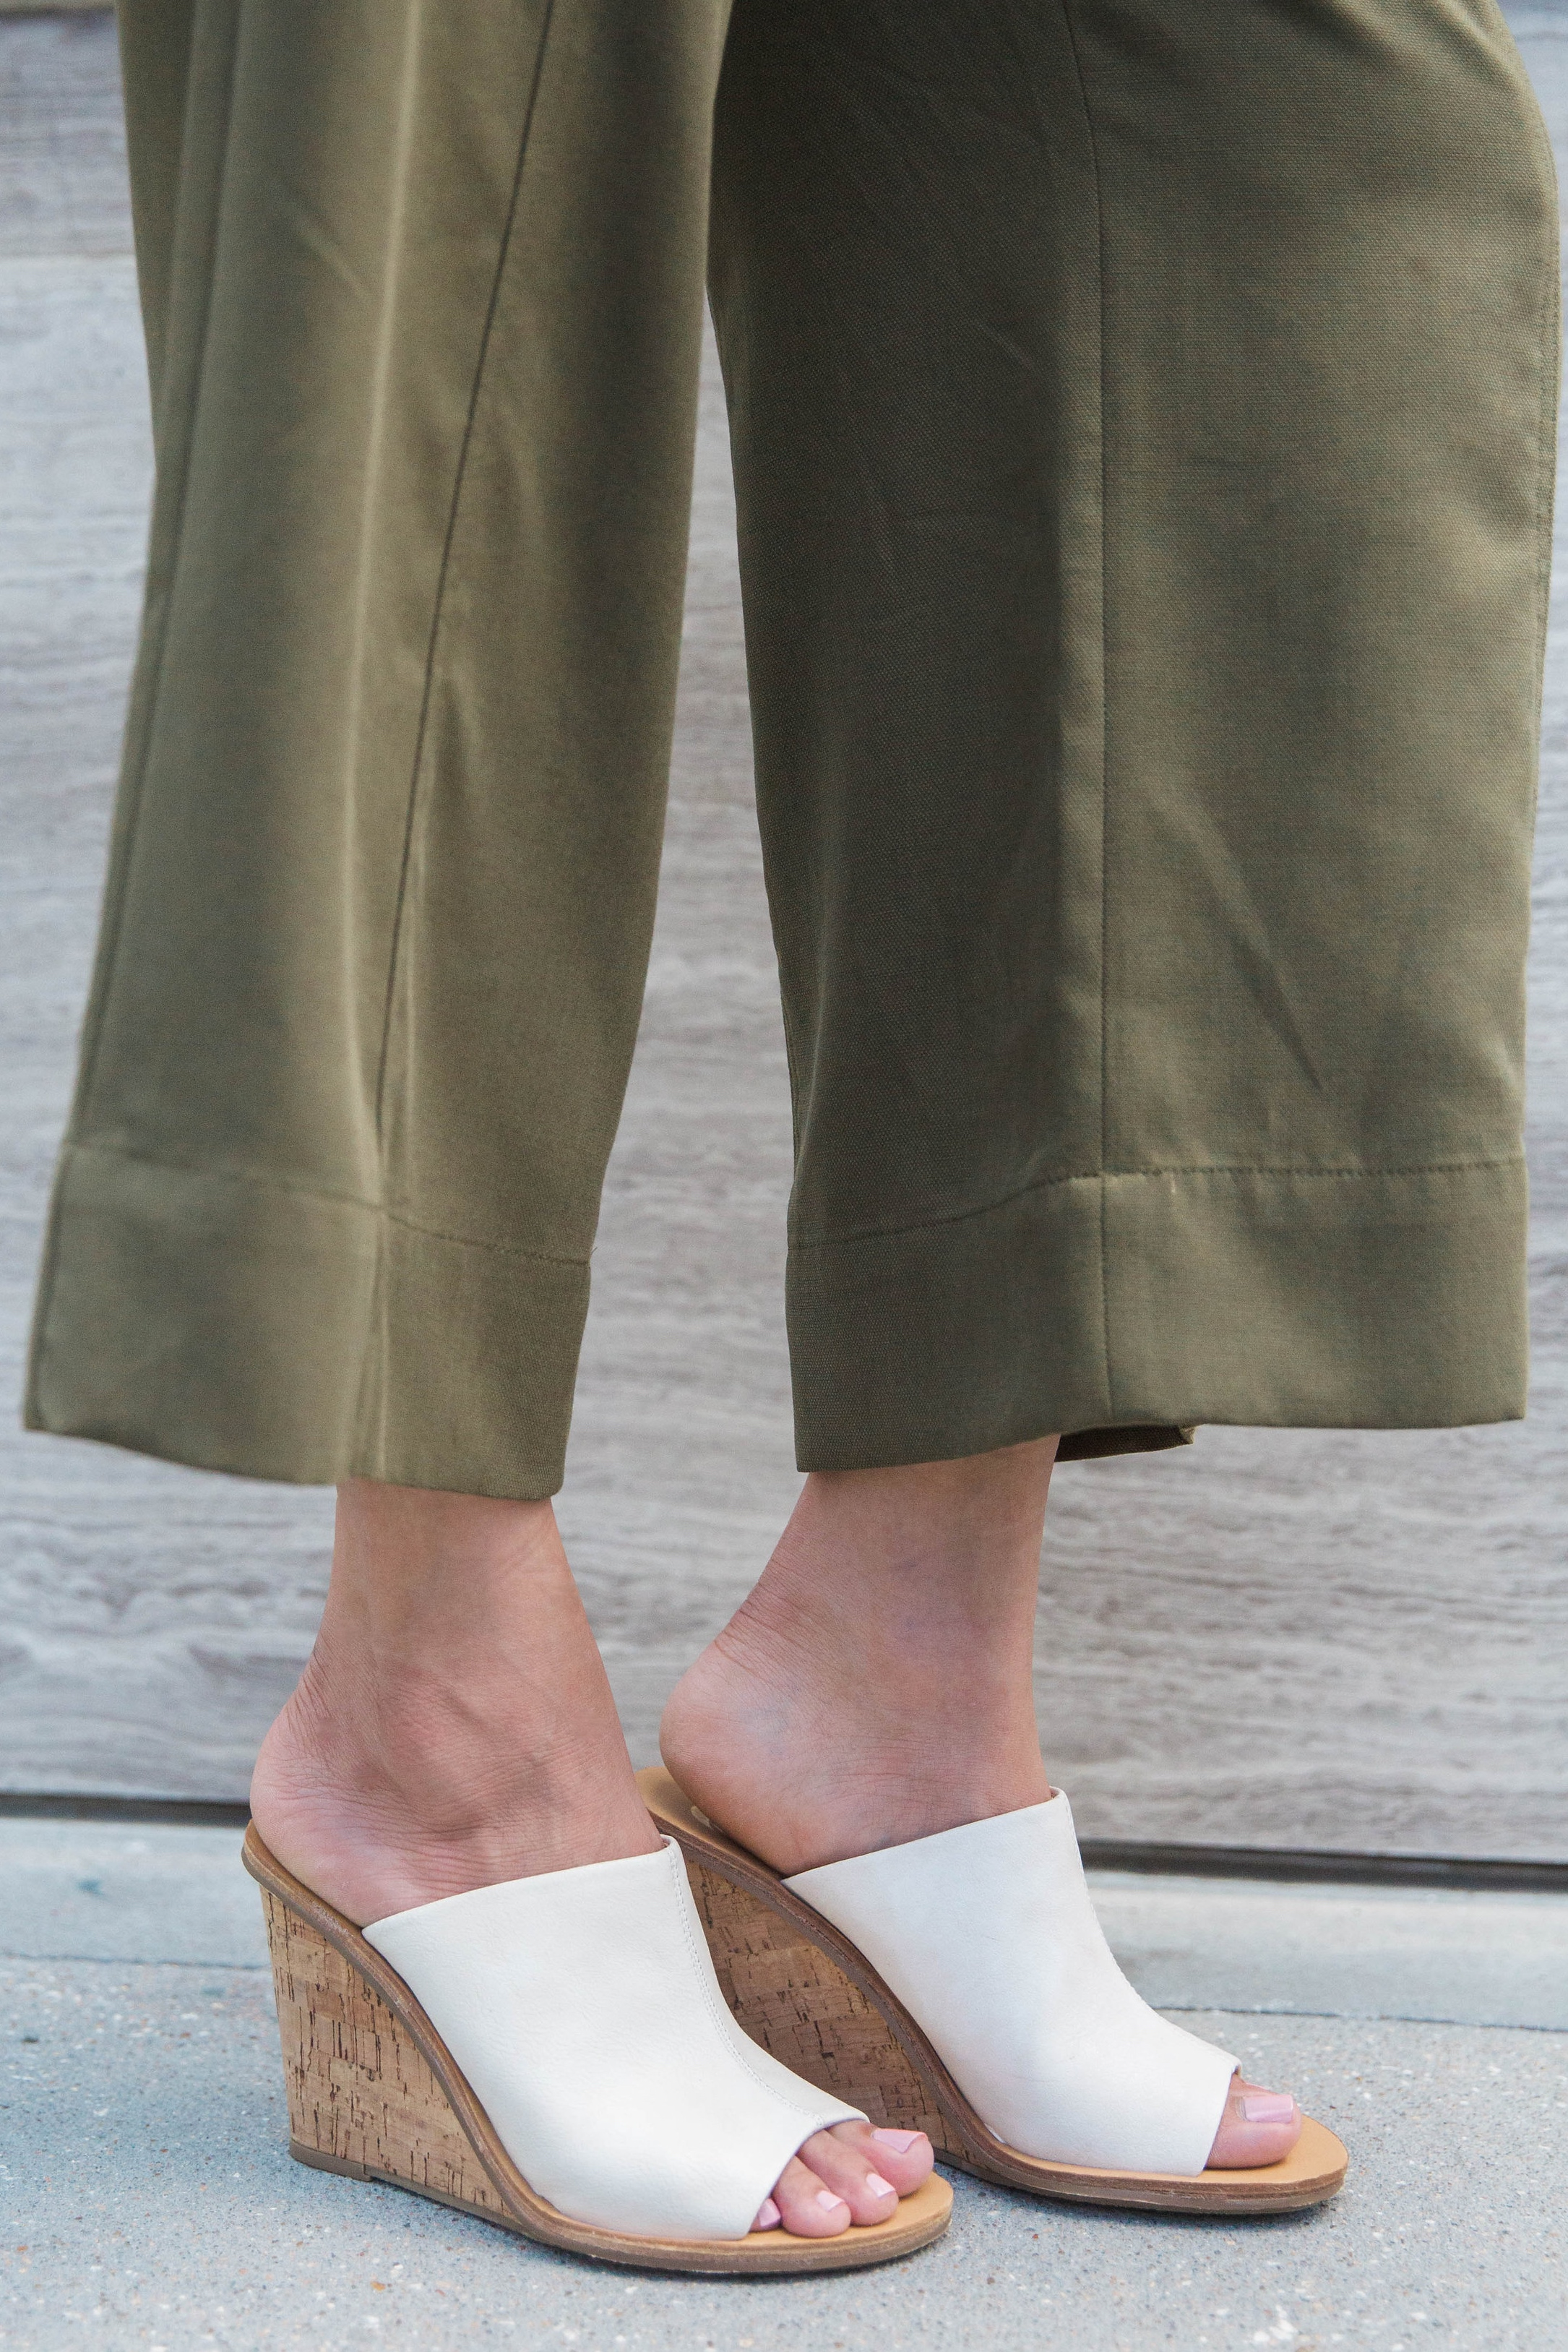 Transitional Pieces | Slip-On Wedge Sandals